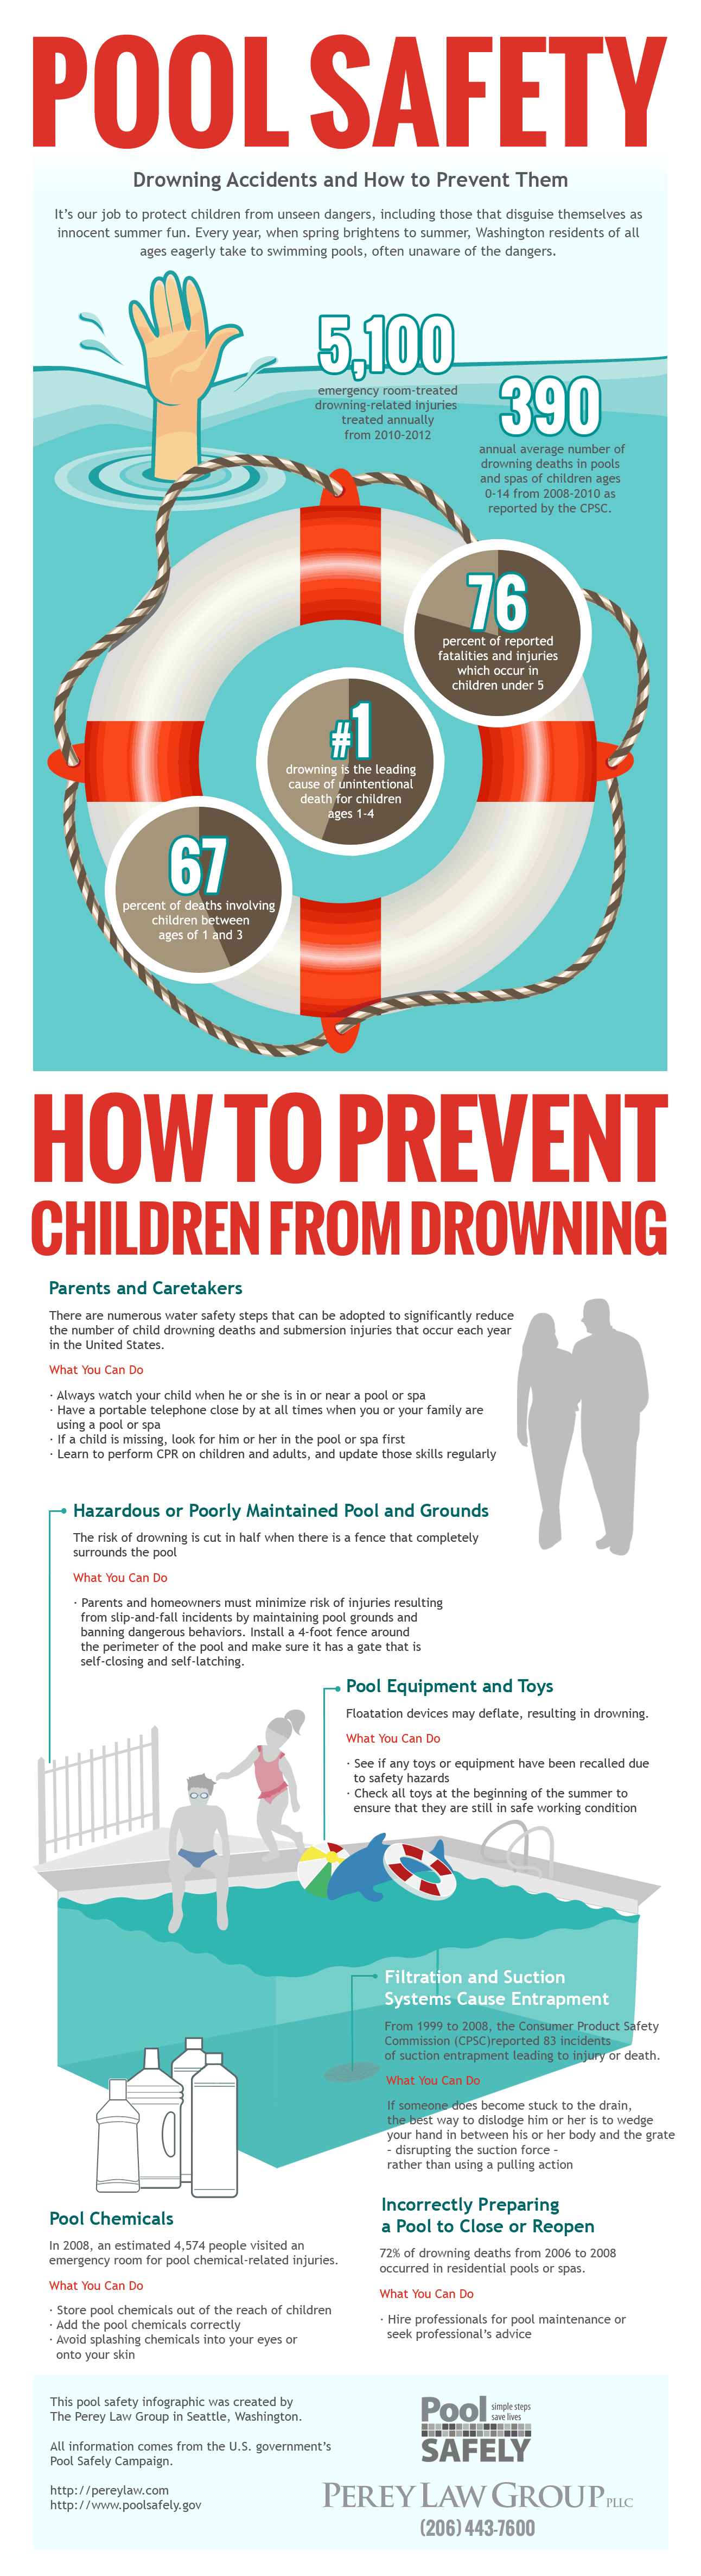 Pool Safety Infographic